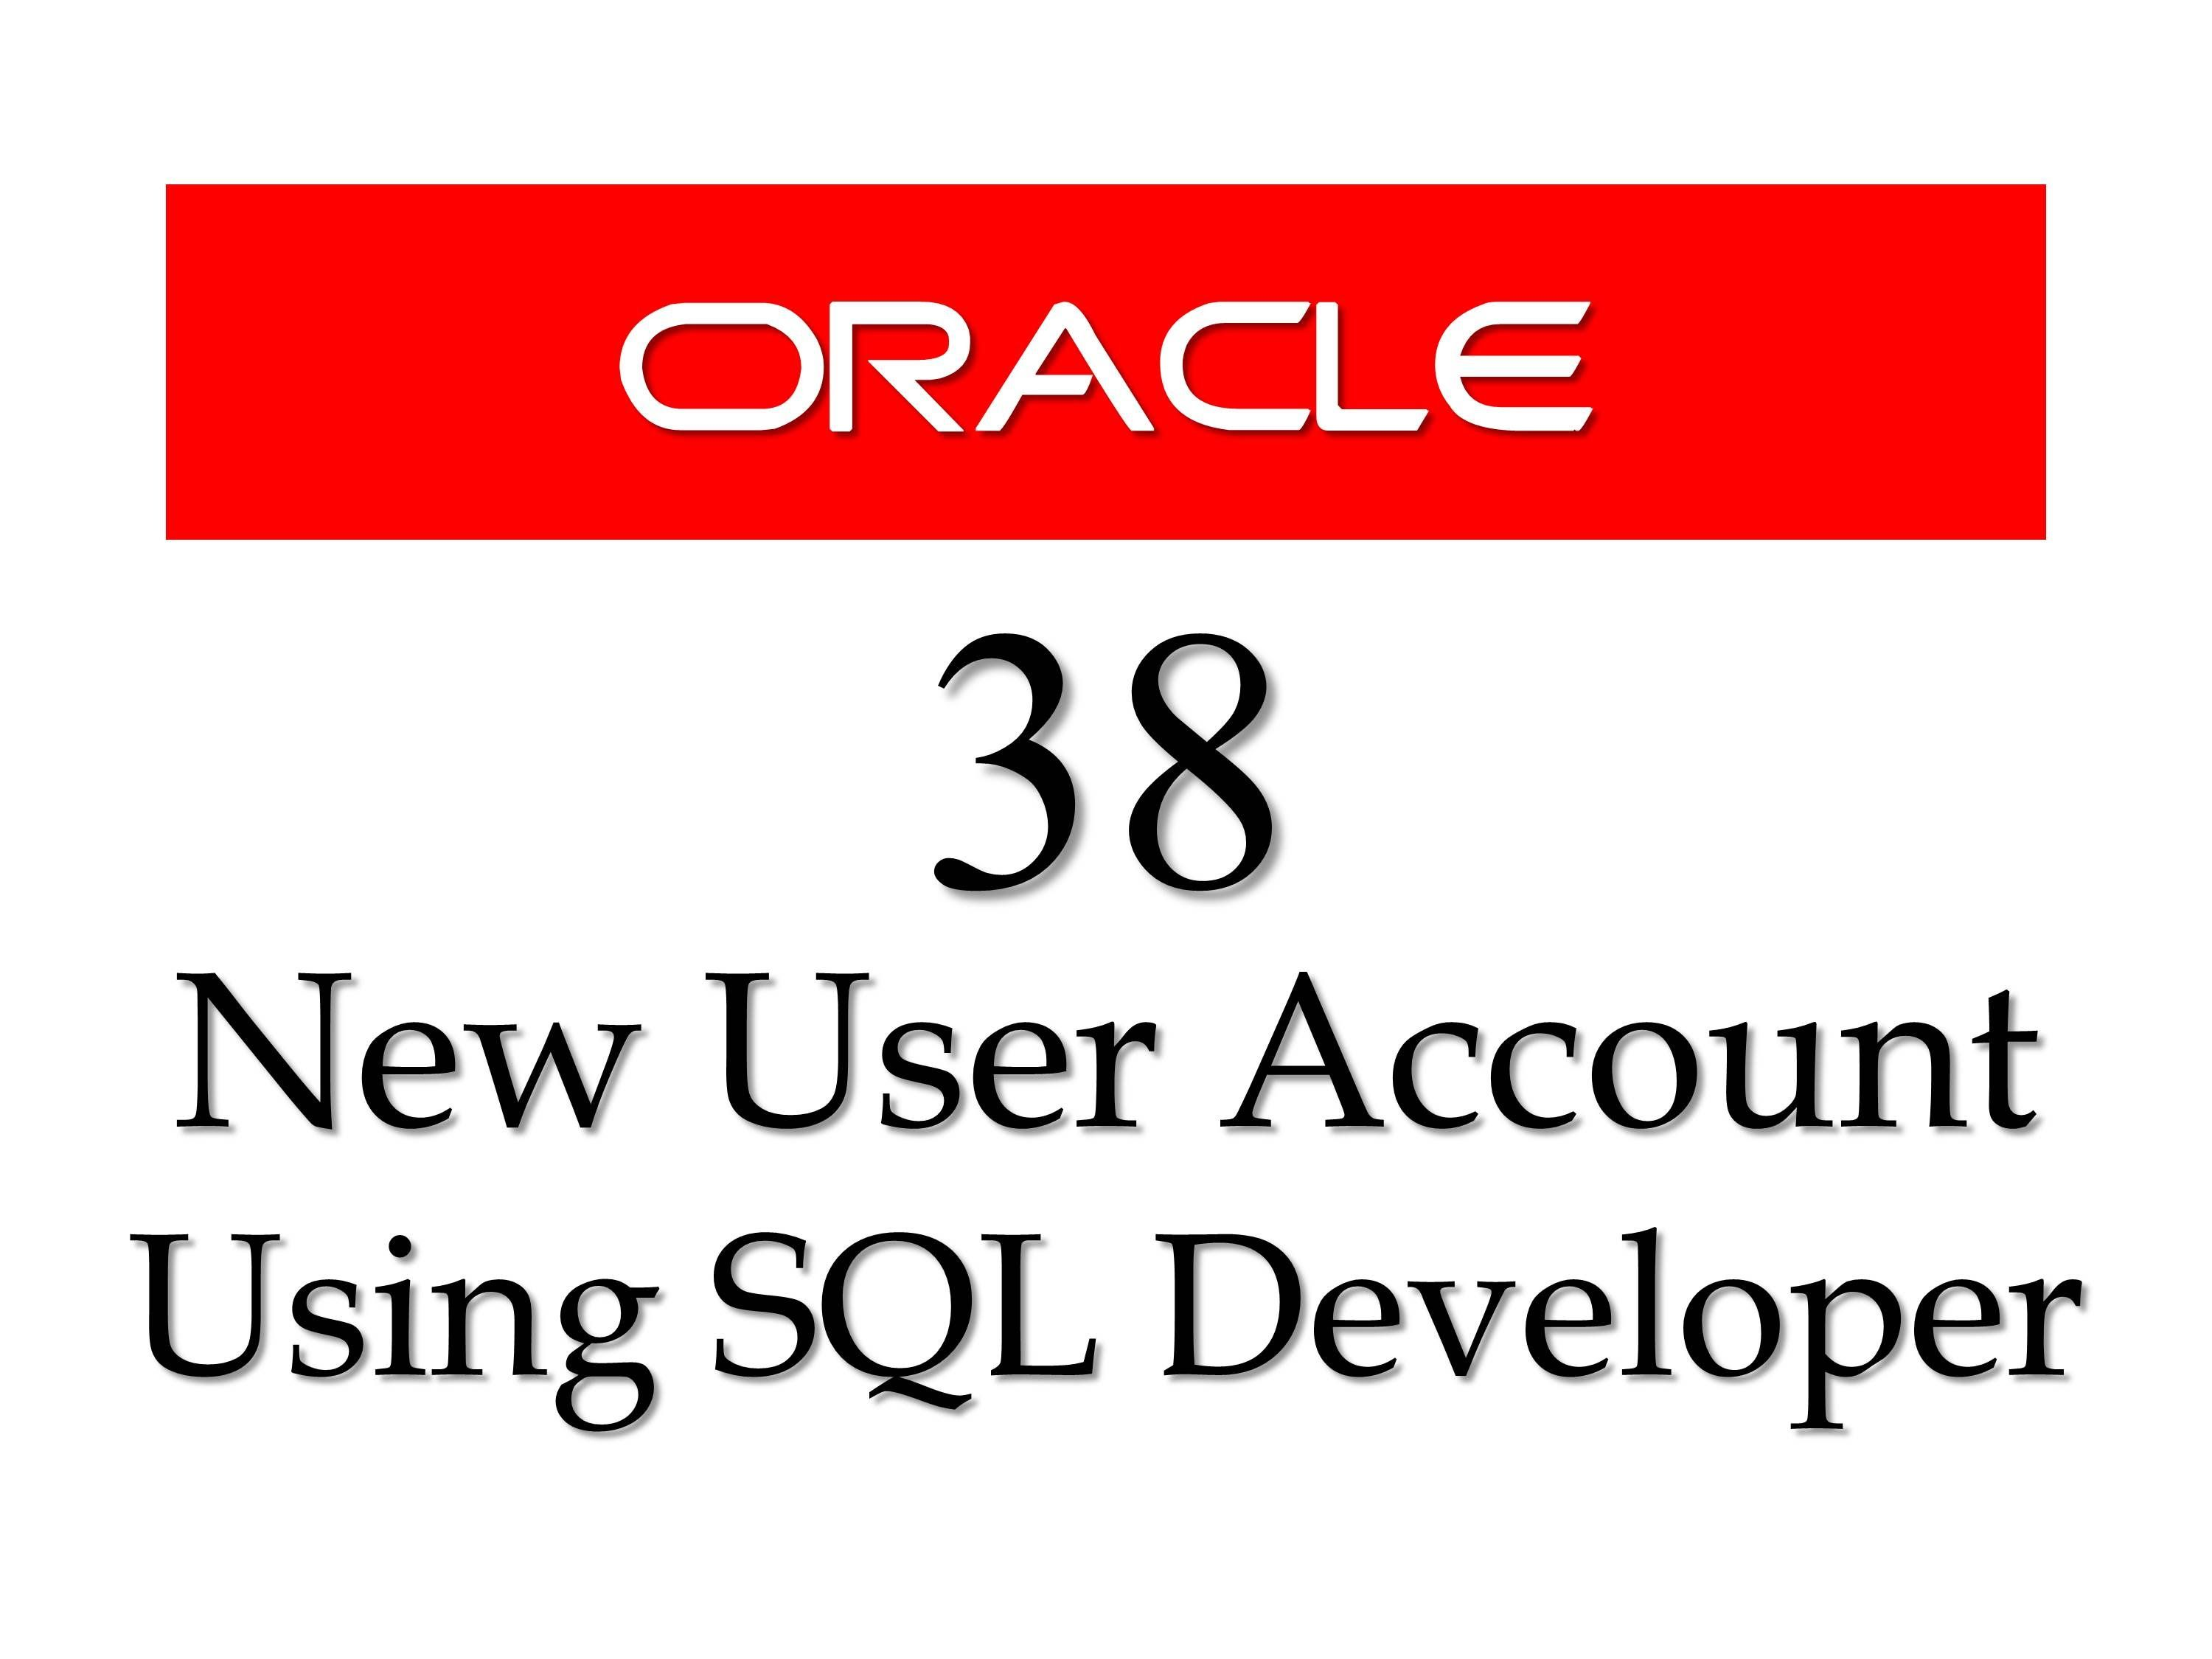 Sql tutorial 38 how to create new user account using how to create new user accounts using sql developer in oracle database in this tutorial you will learn how to create a new user account baditri Images